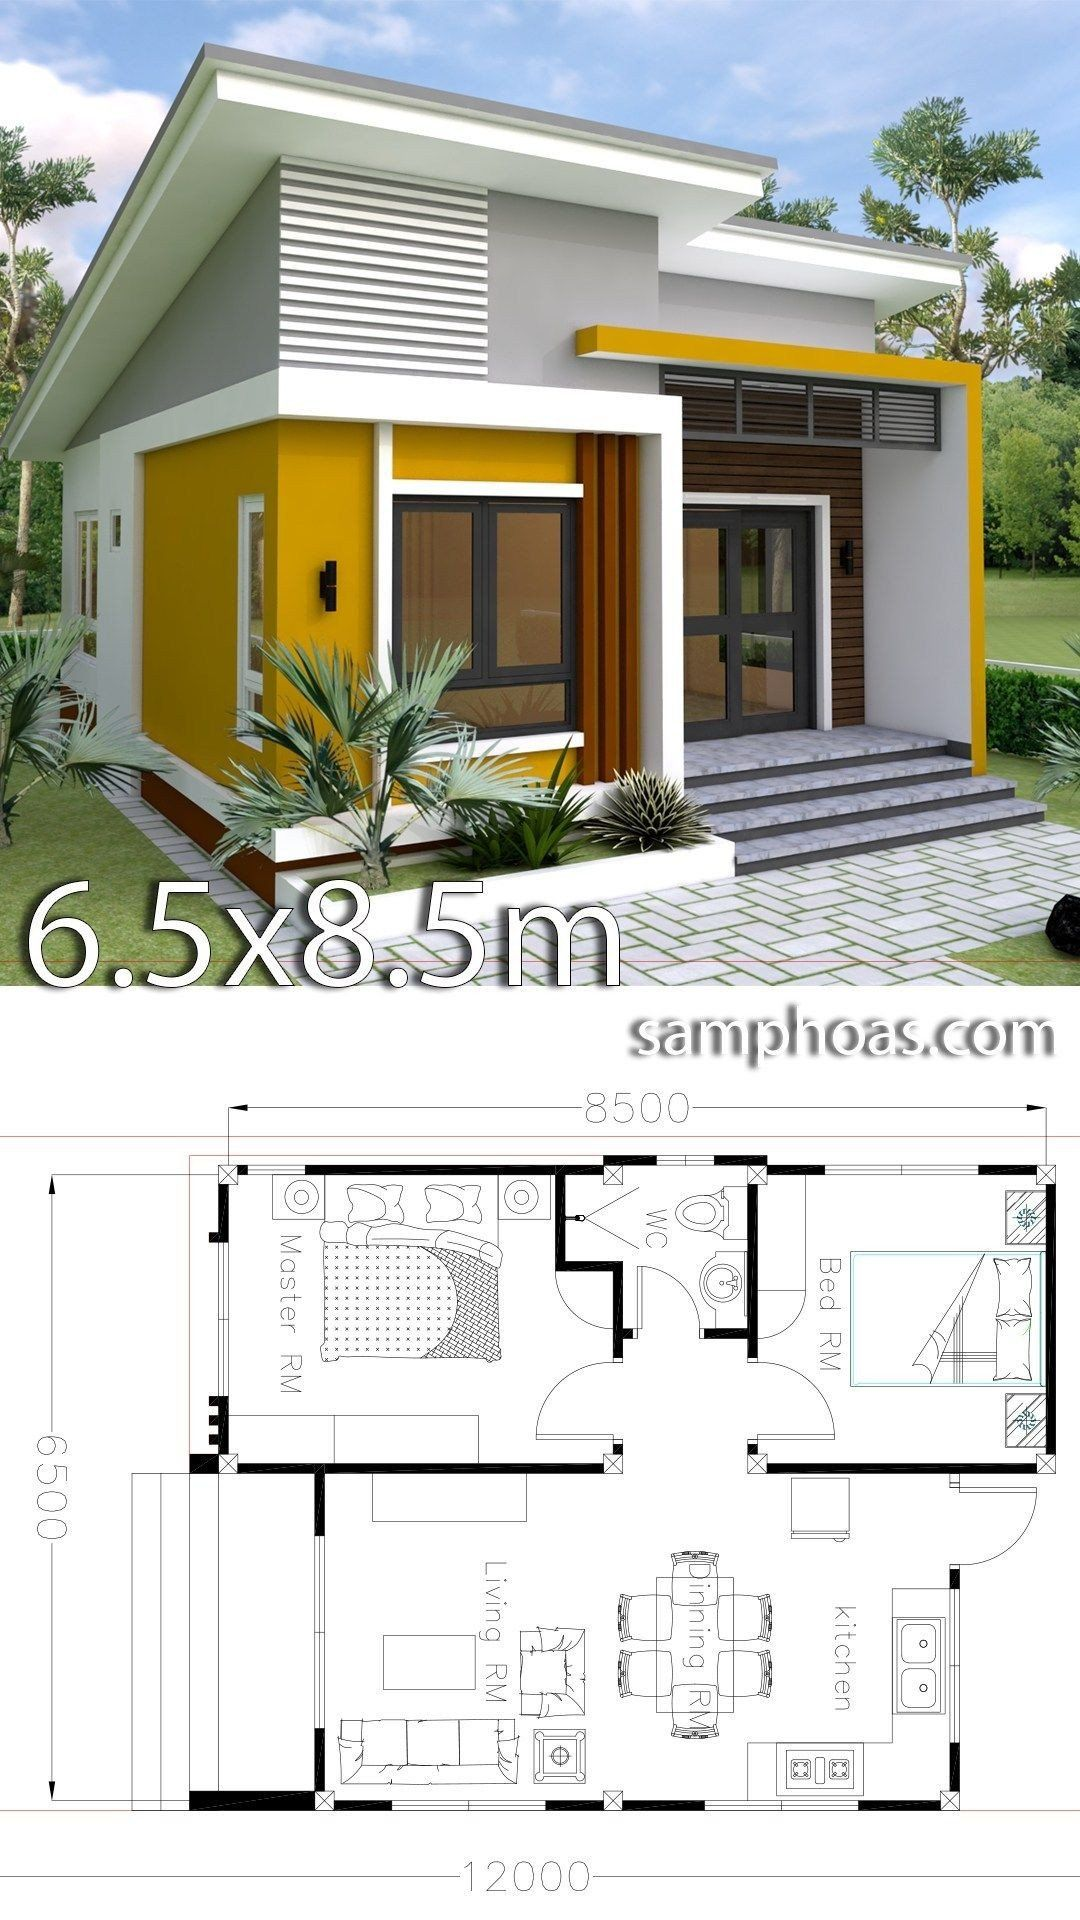 Low Cost Modern House Designs Philippines Small Home Design Plan 6 5x8 5m With 2 Bedrooms In 2020 Small House Design Plans Simple House Design Small House Design